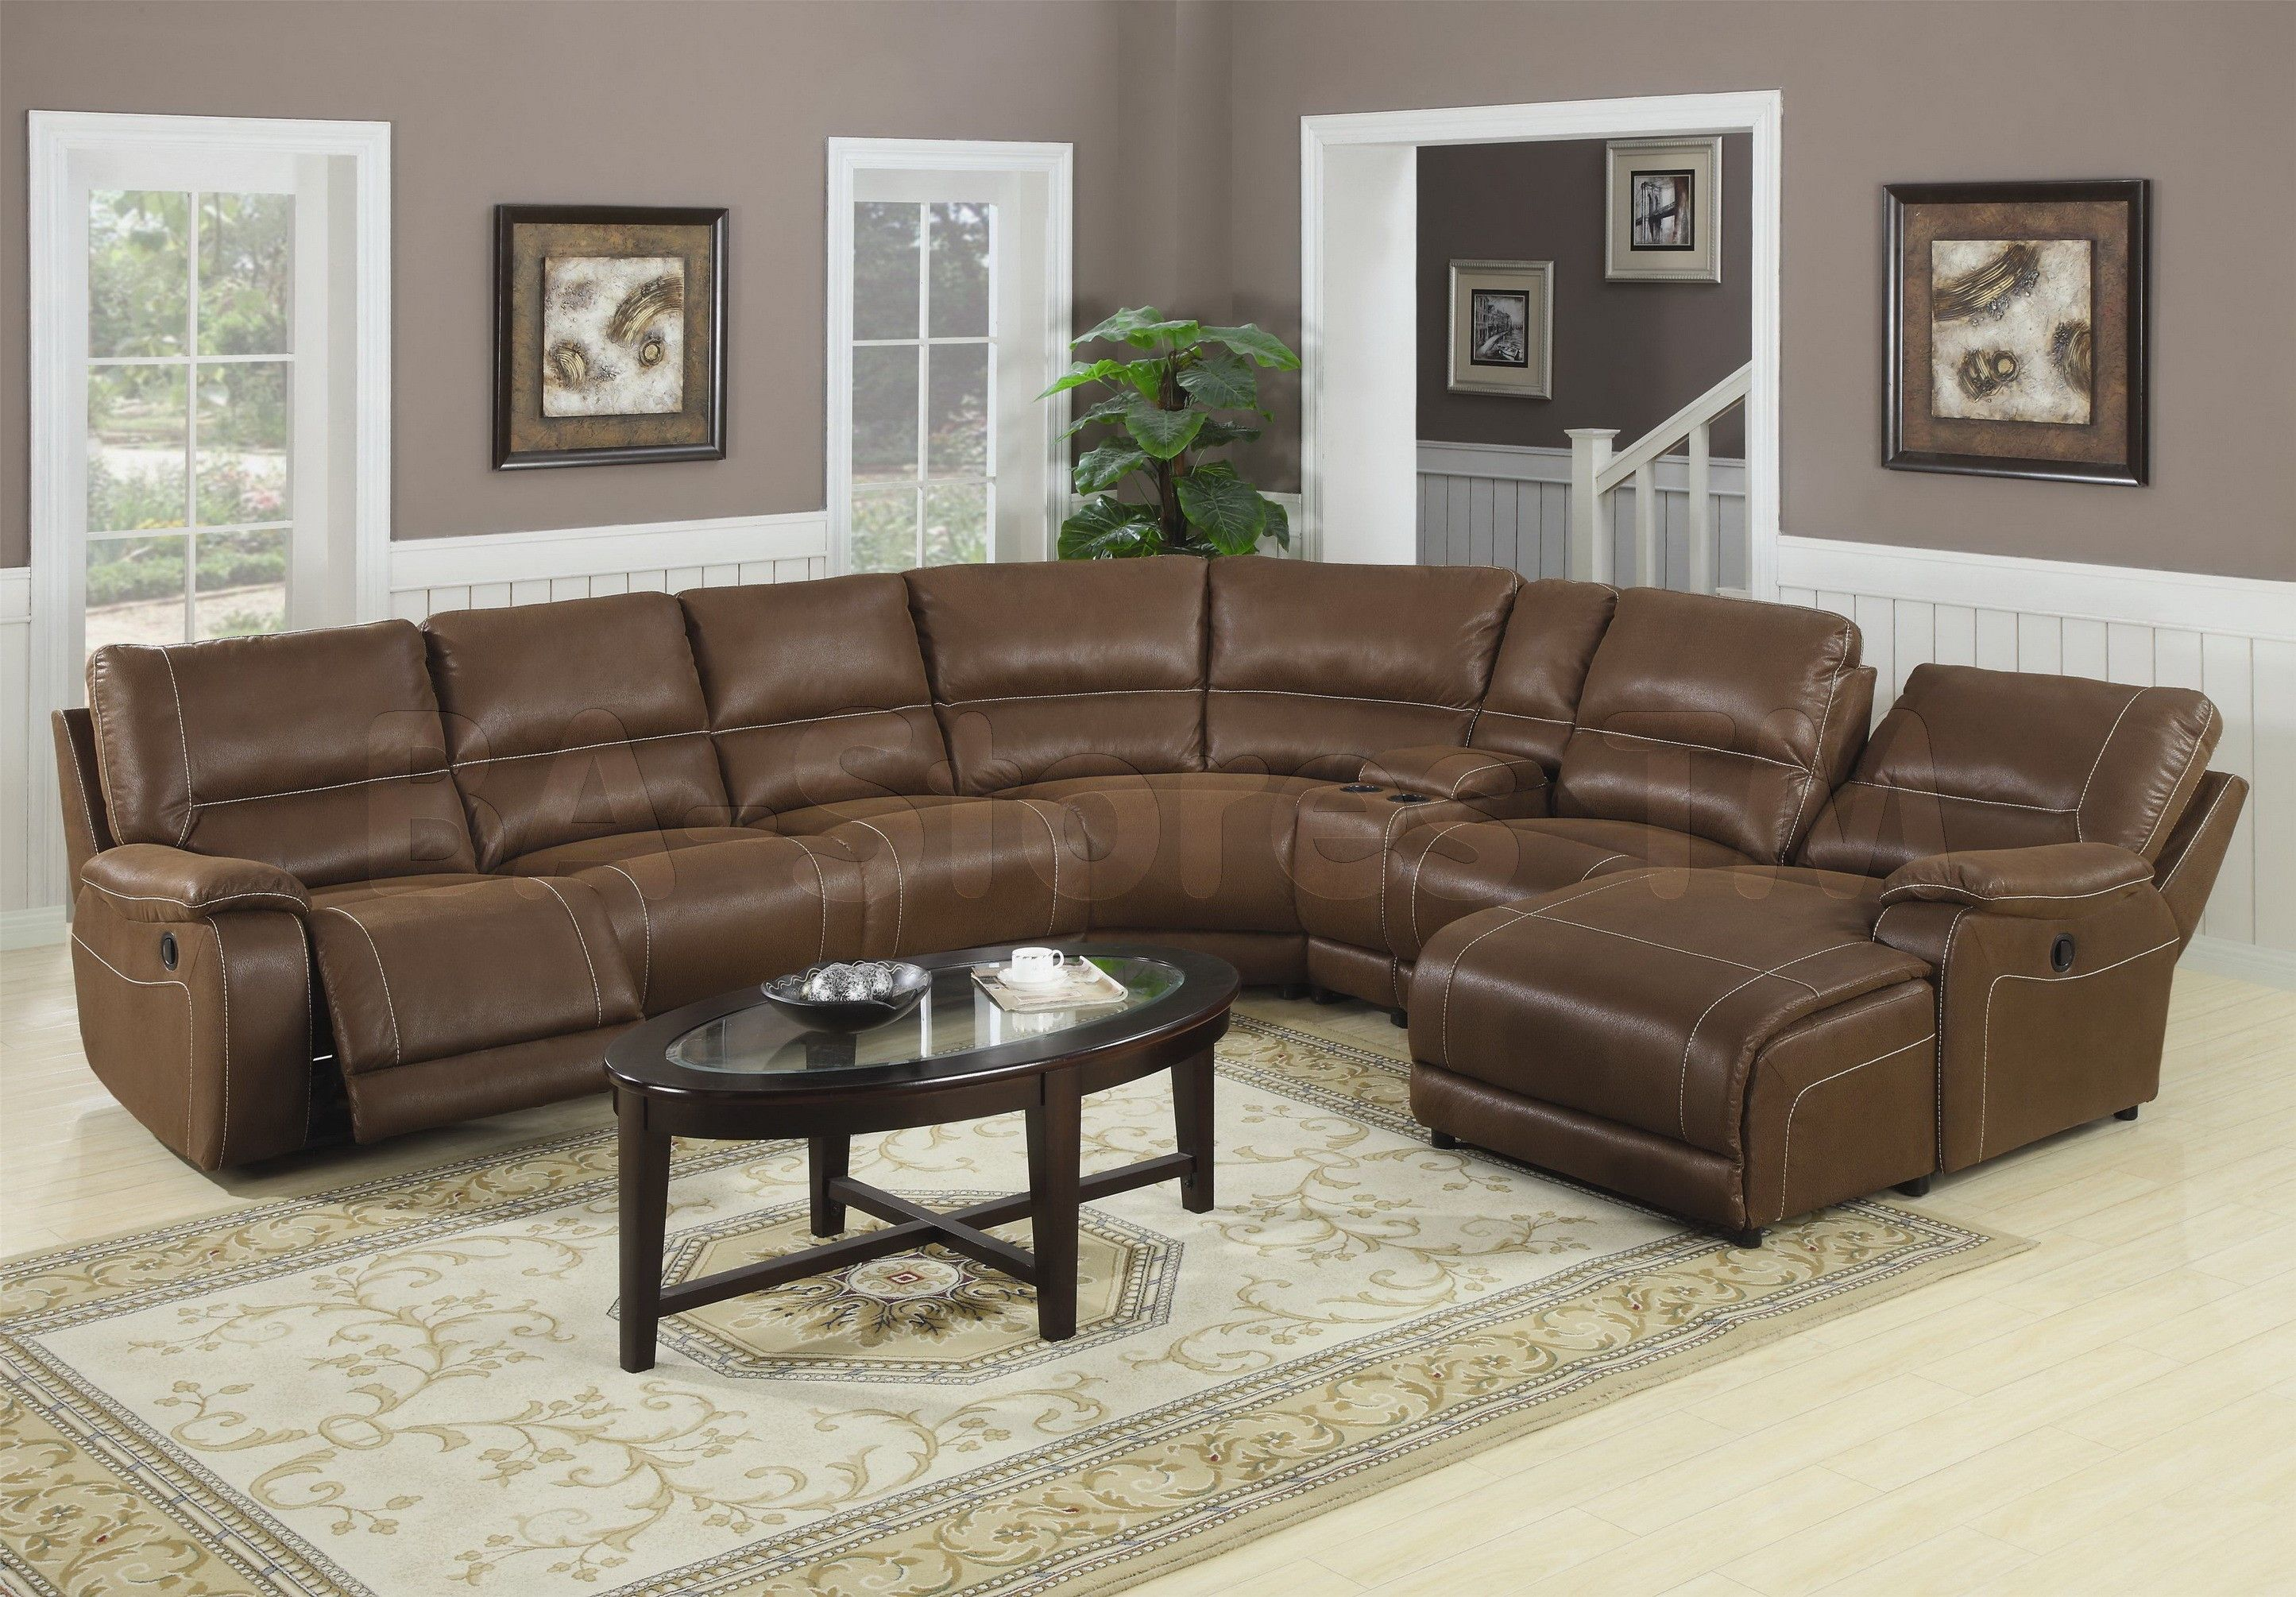 Excellent Buy Large Sectional Sofas Perfect For Your Large Living Room Caraccident5 Cool Chair Designs And Ideas Caraccident5Info